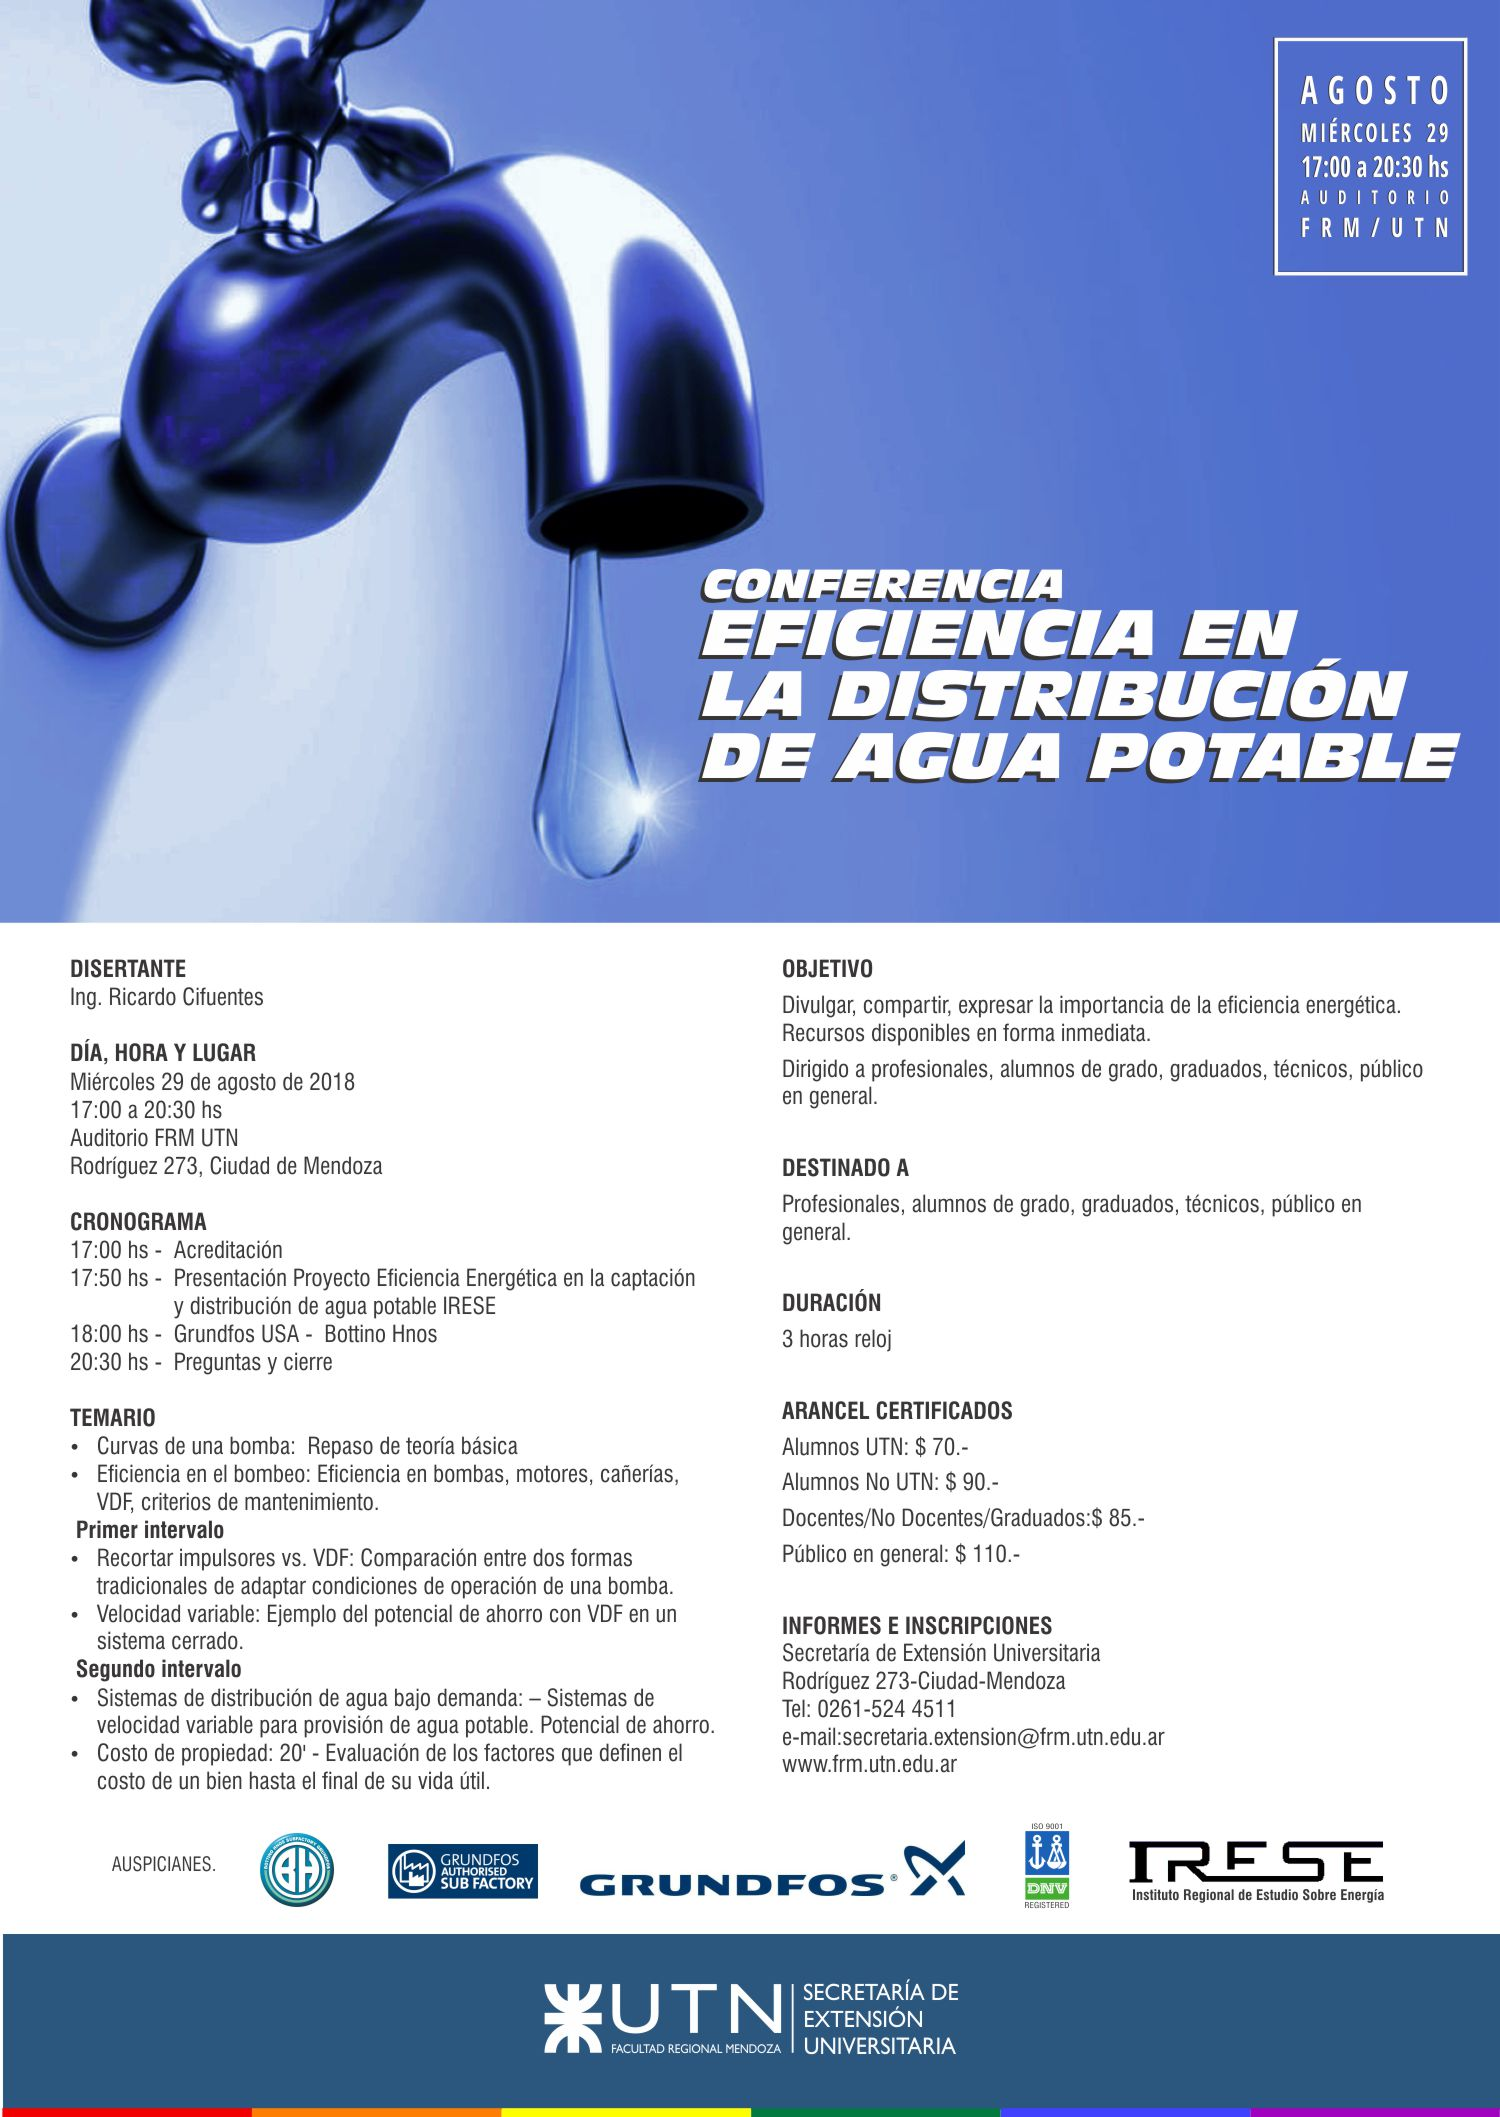 eficiencia_distribucion_agua_potable_2.jpg